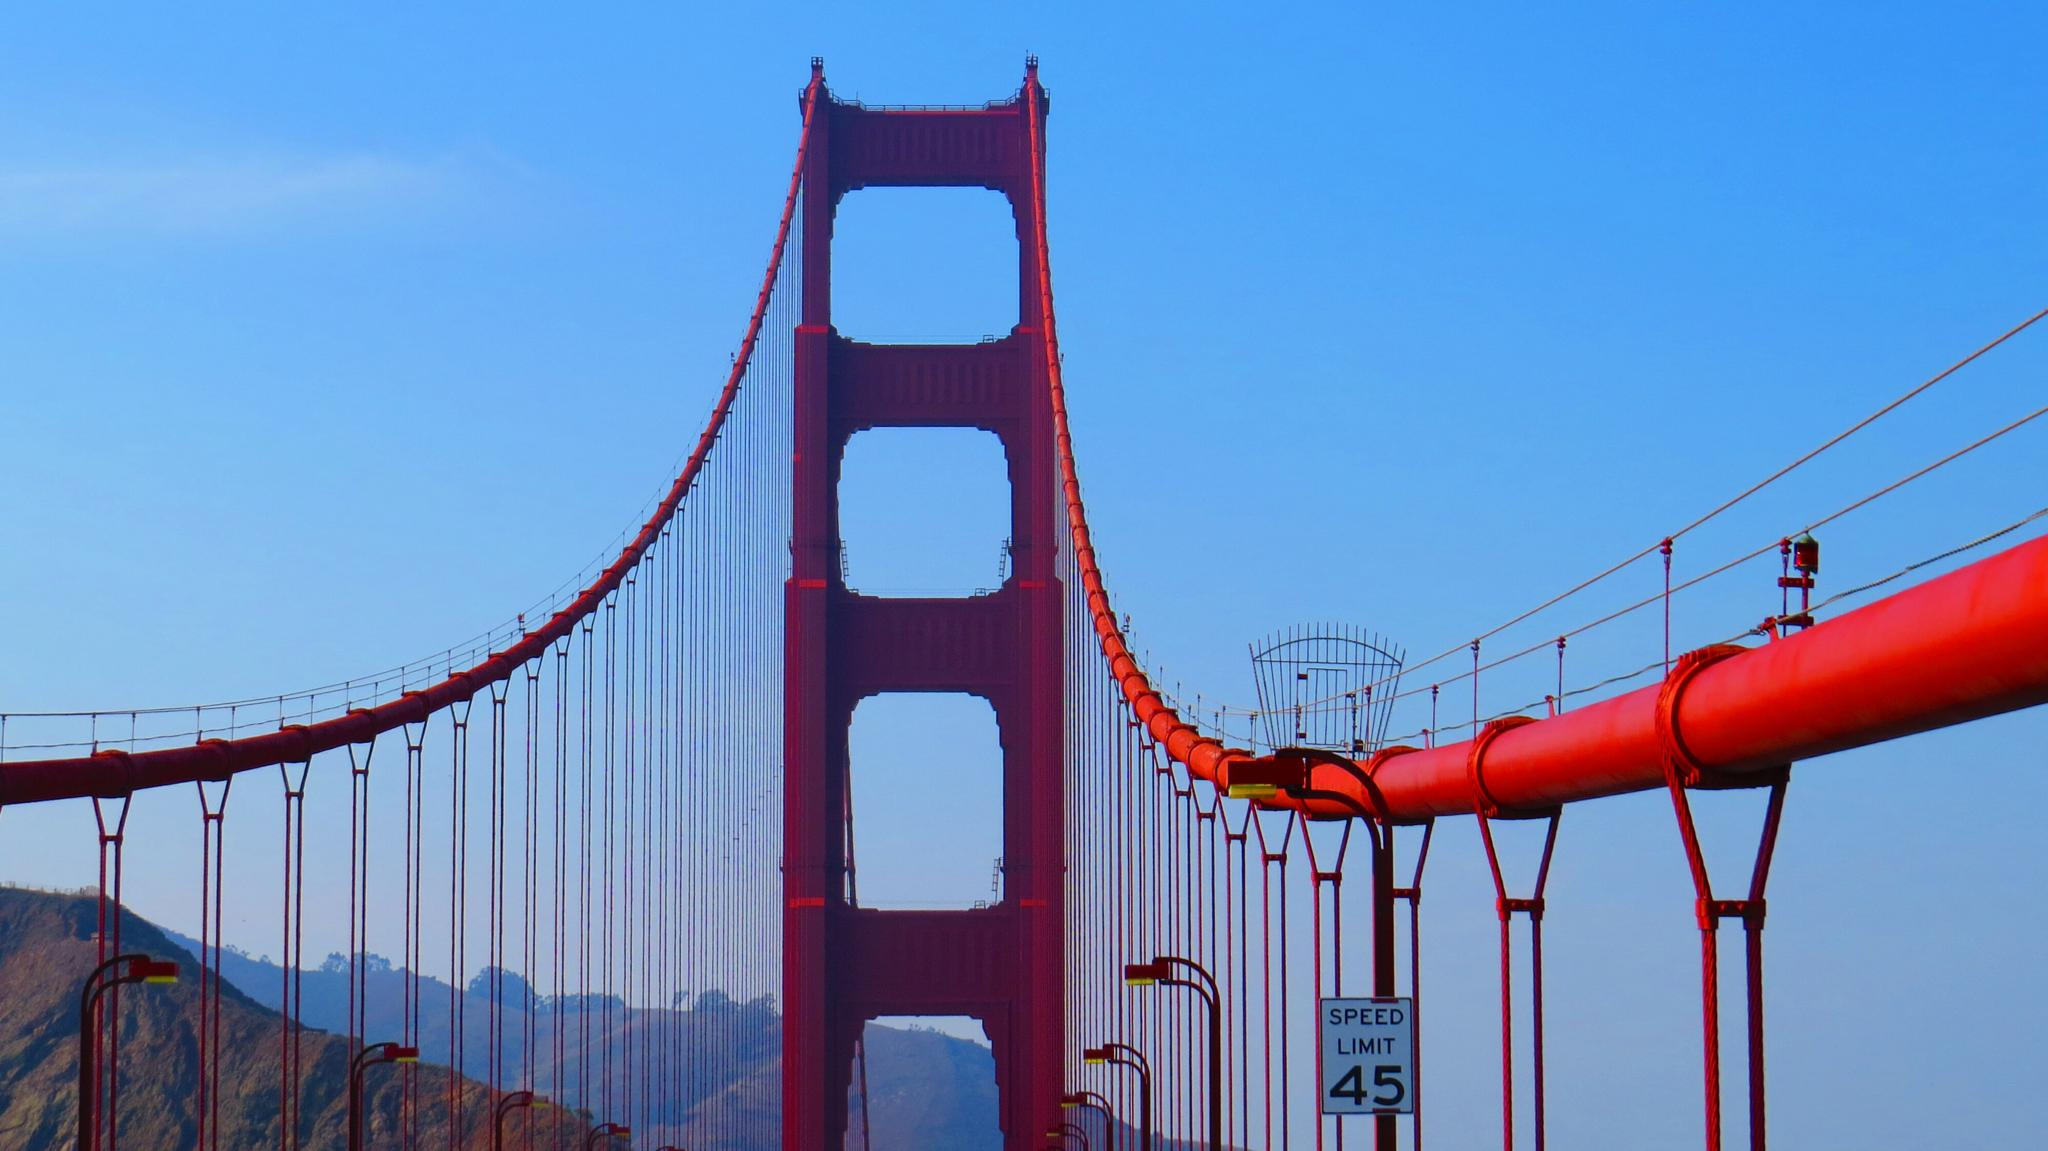 Golden gate by soulofcentralcoast